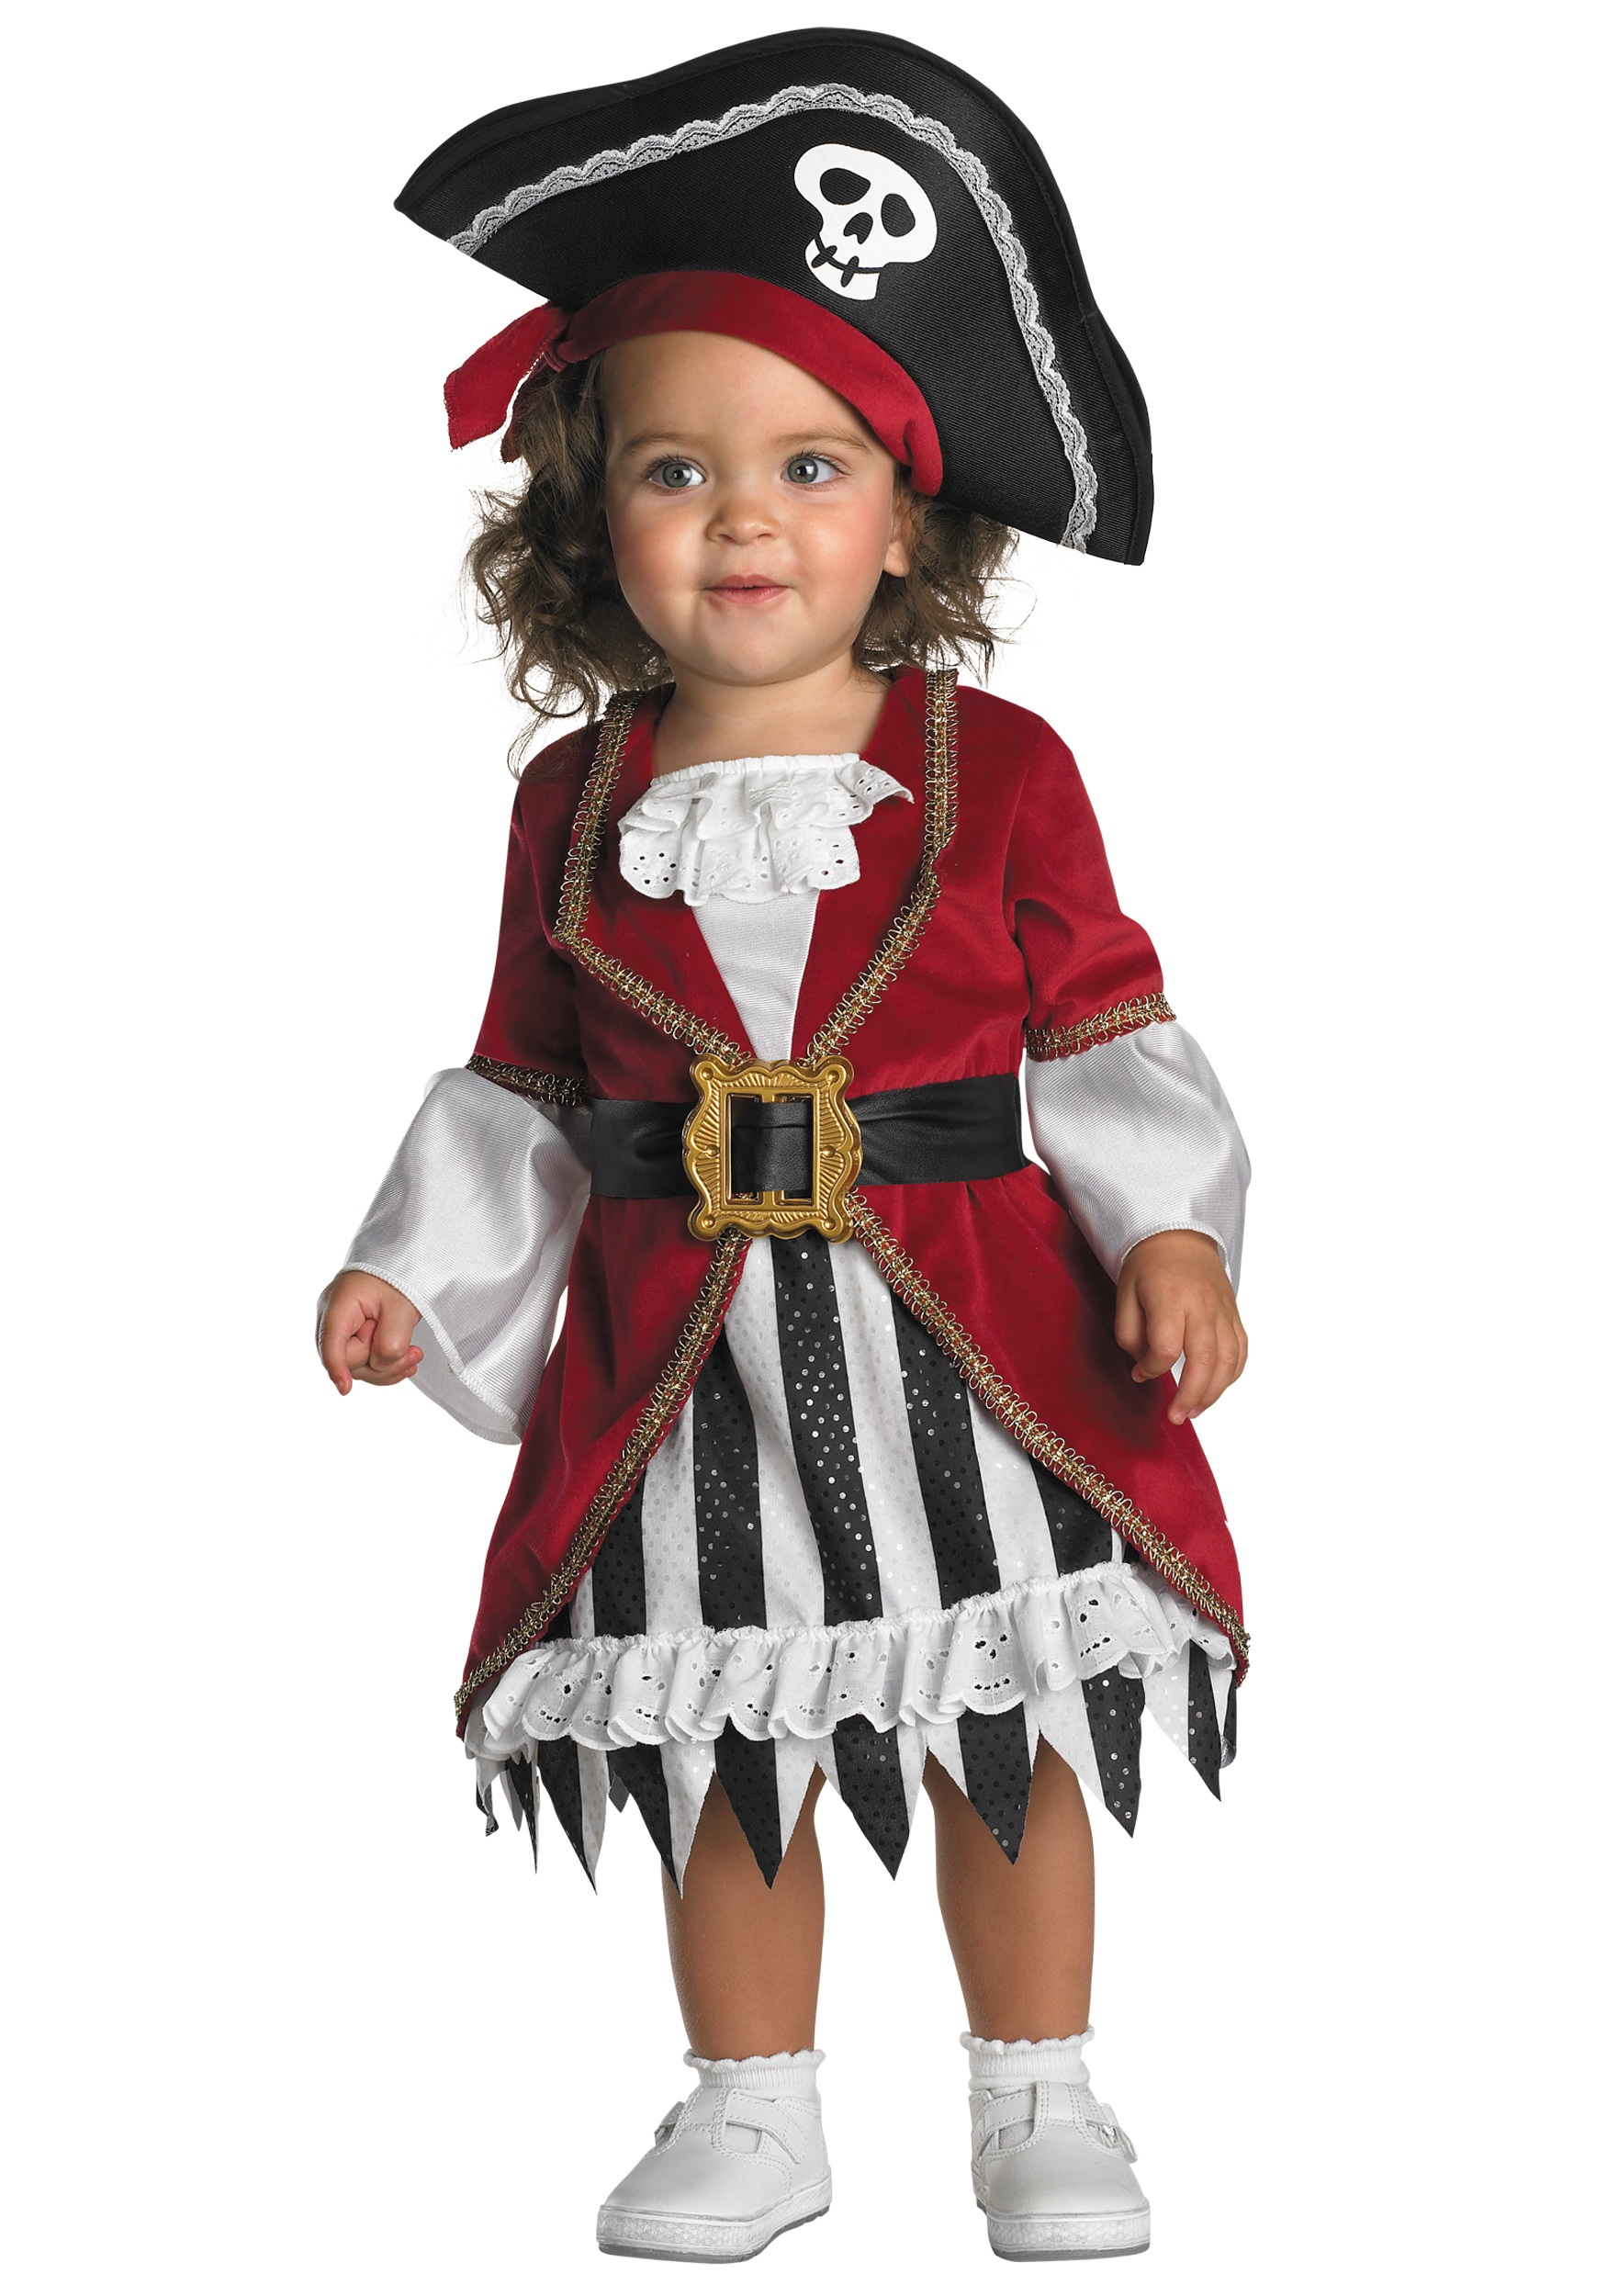 Toddler Pirate Princess Costume - Girls Pirate Halloween ... - photo#35